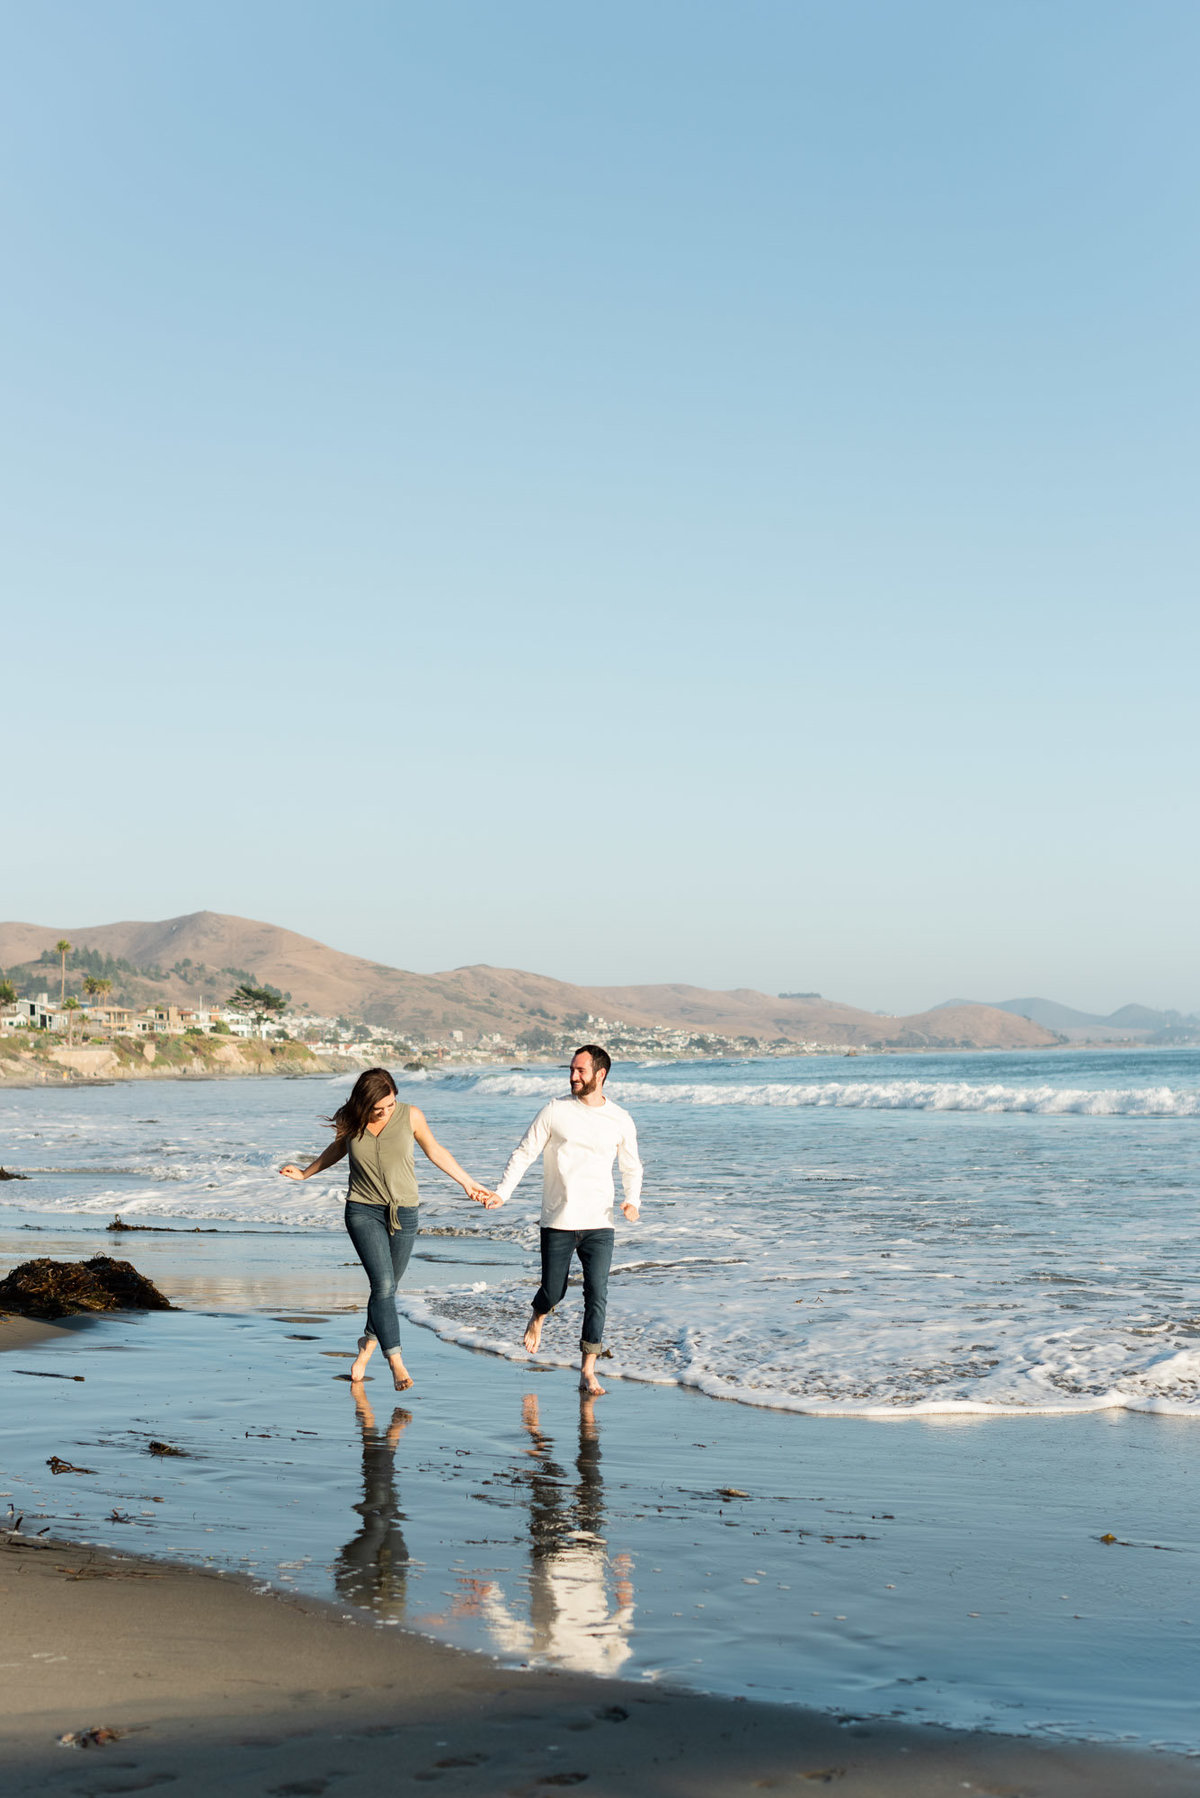 Central-Coast-Engagement-Session-by-San-Luis-Obispo-Wedding-Photographer-Kirsten-Bullard-15